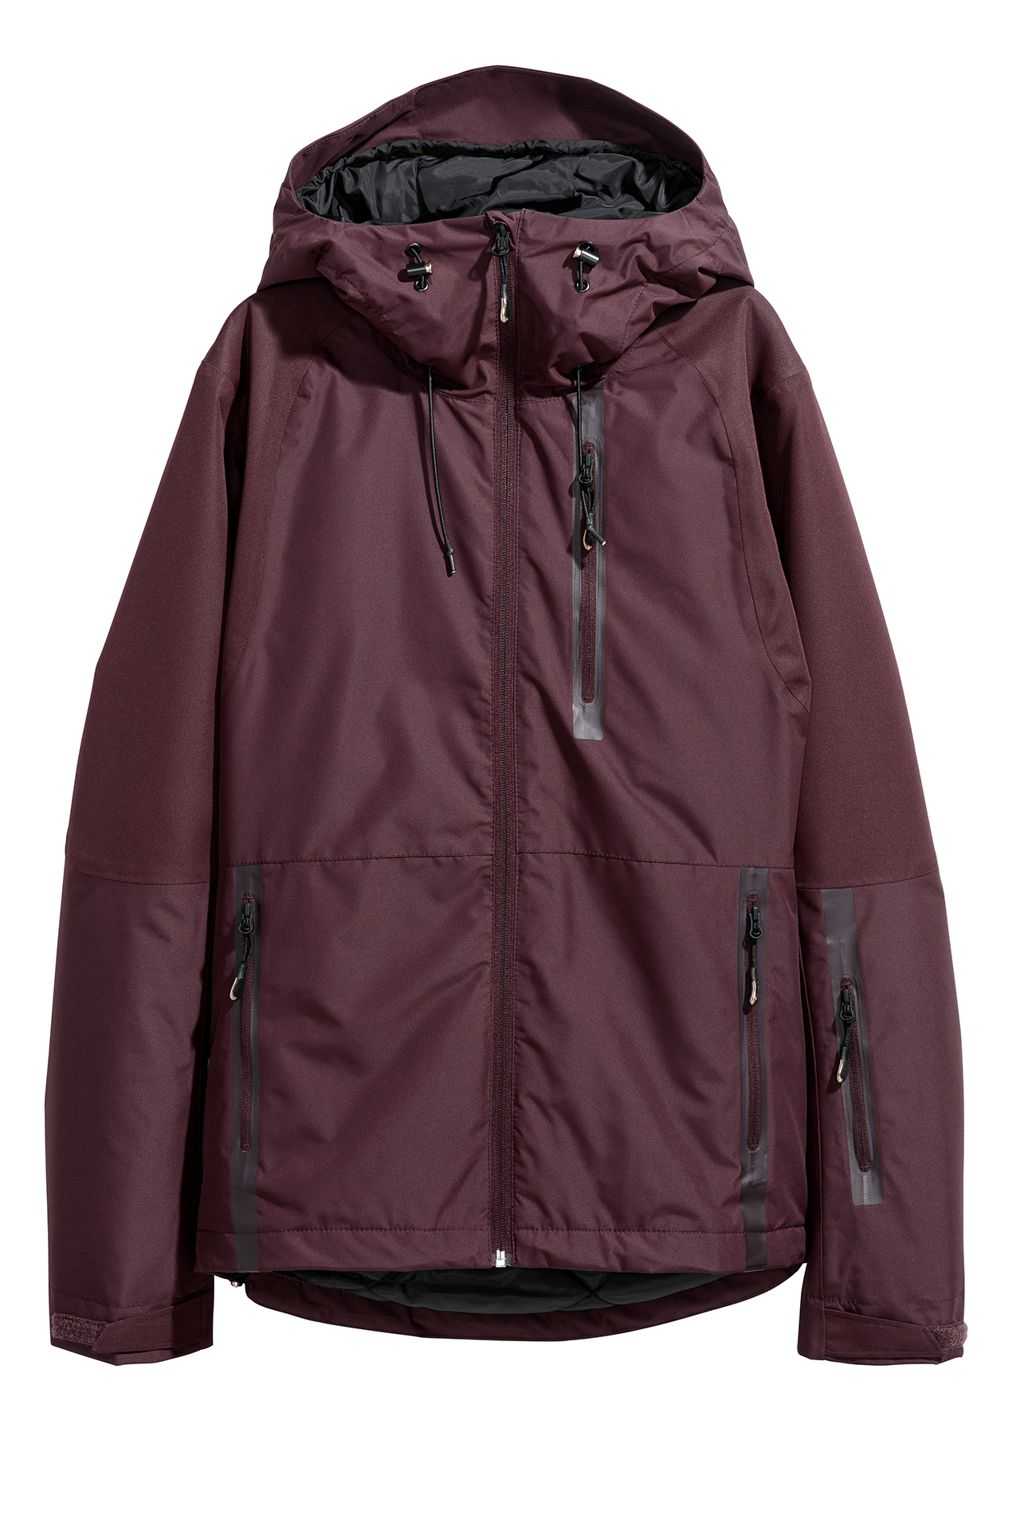 The best ski jackets to wear on the slopes - and in the city: https://t.co/vdndDz4fVn https://t.co/N6GYCNfEtY